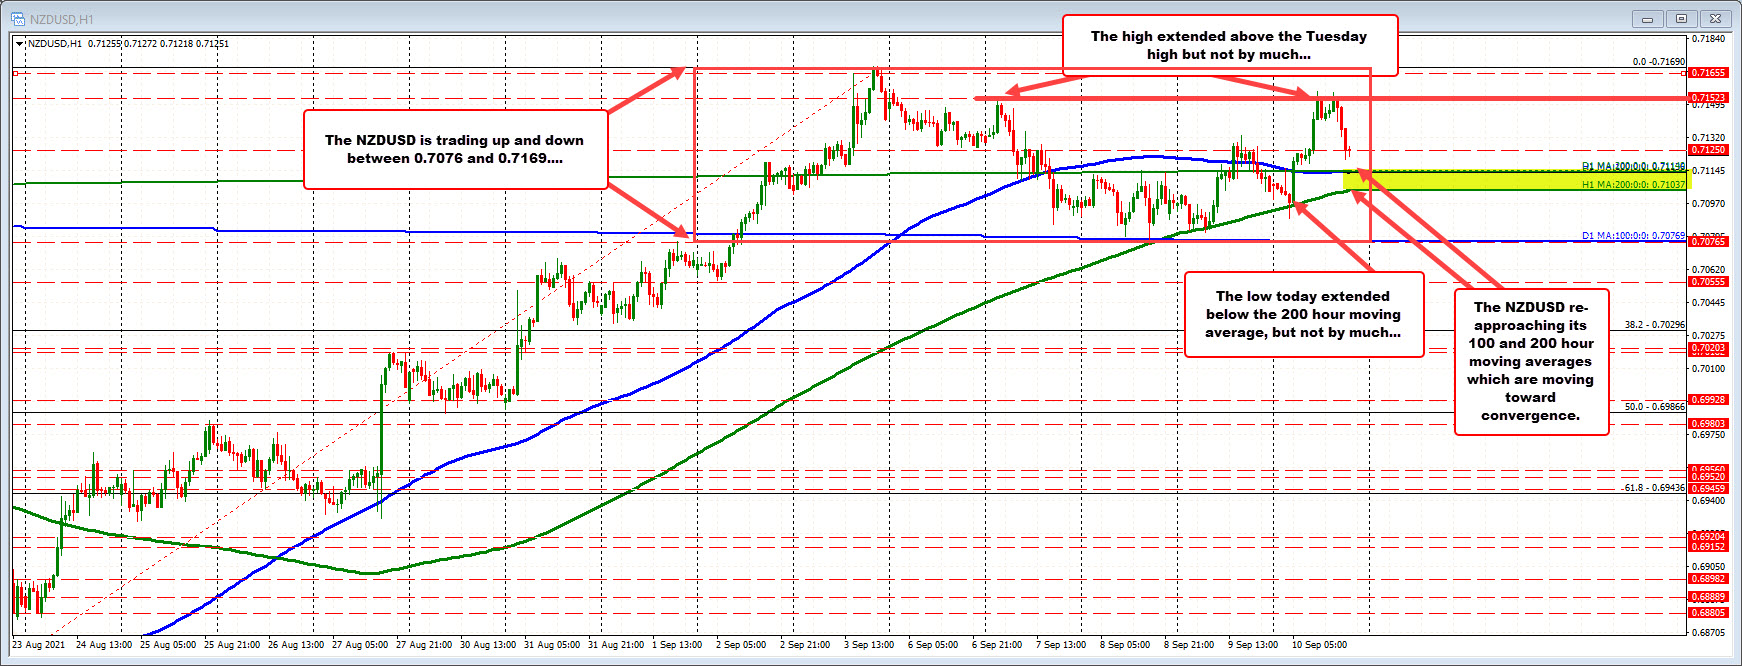 NZDUSD moved back toward moving averages in the middle of the trading range